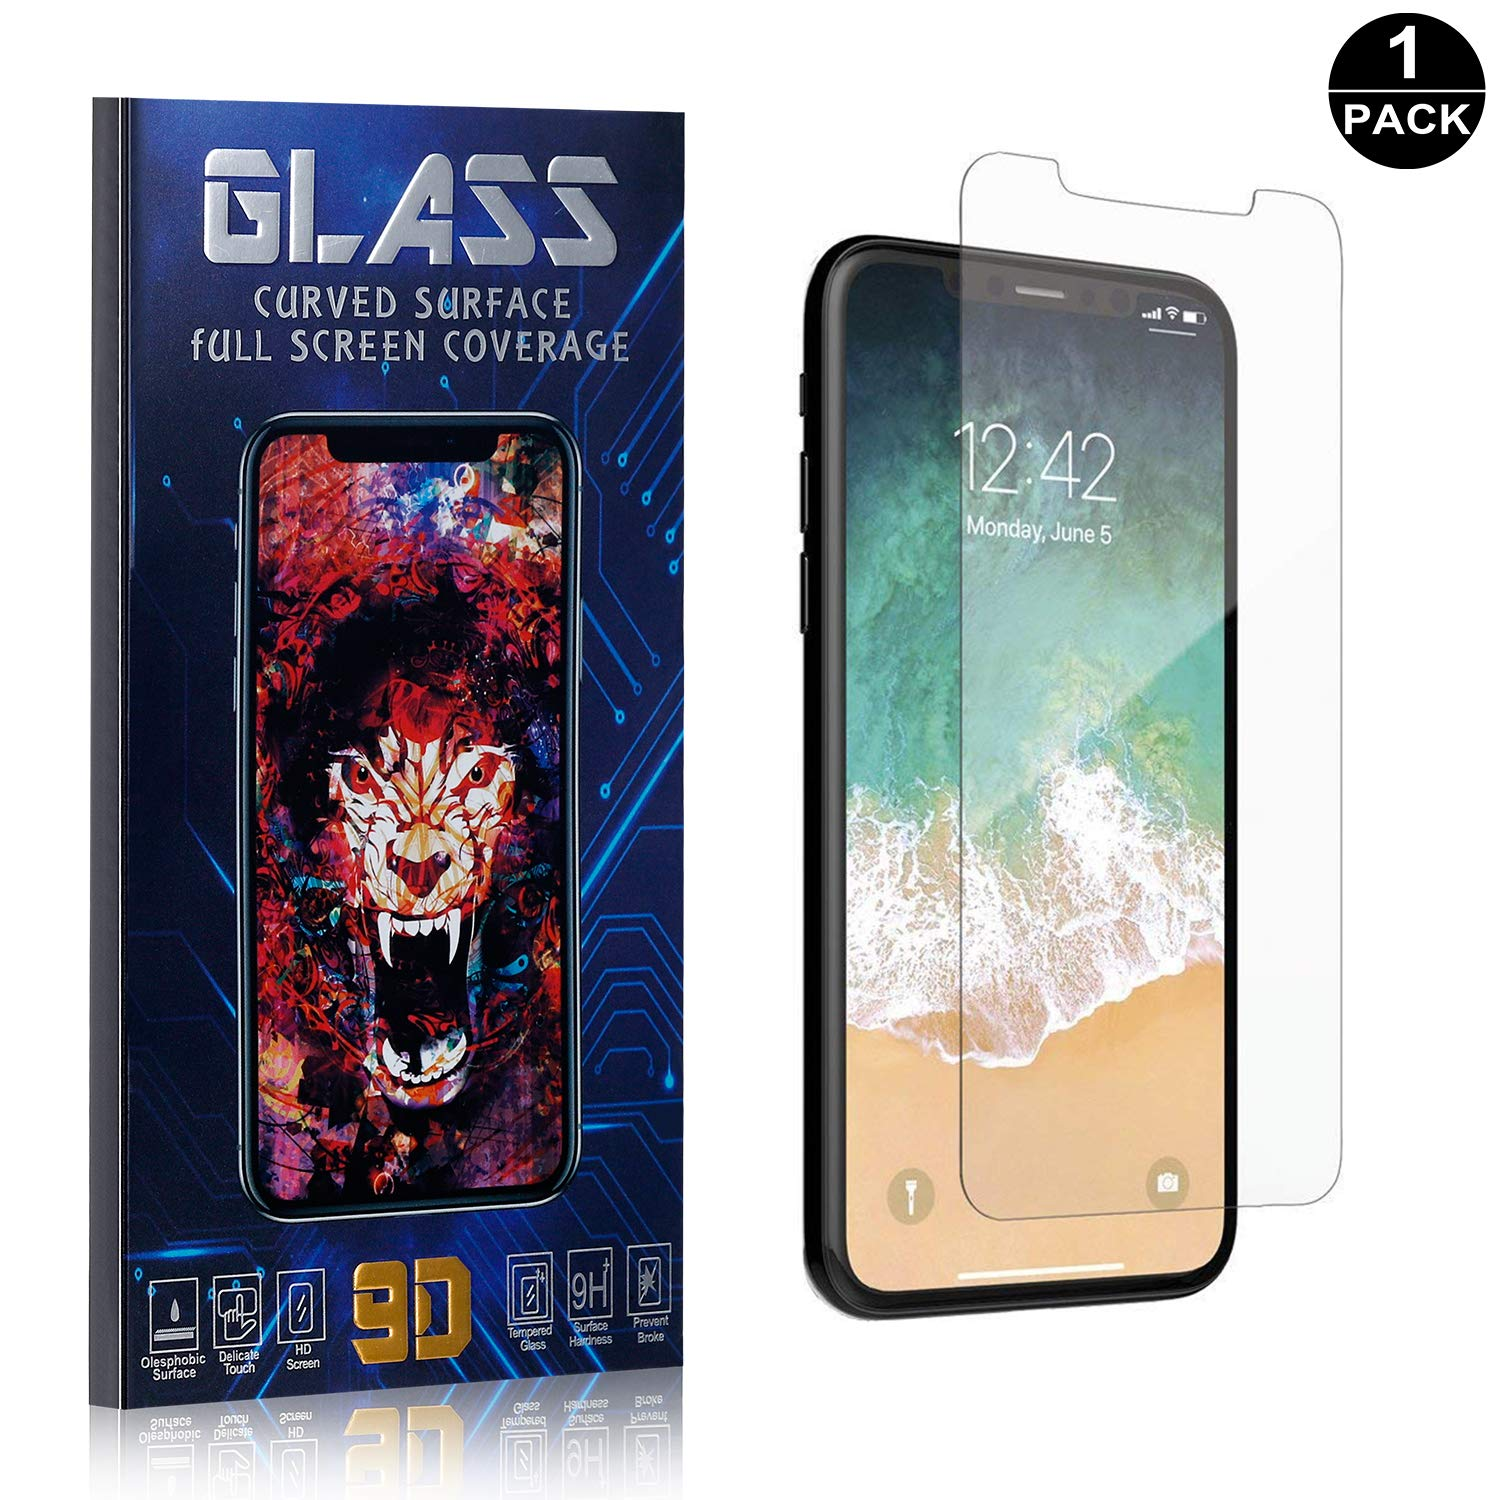 1 Pack Scratch Resistant Ultra Clear Tempered Glass Screen Protector Film for iPhone X//iPhone Xs Bear Village Screen Protector for iPhone X//iPhone Xs